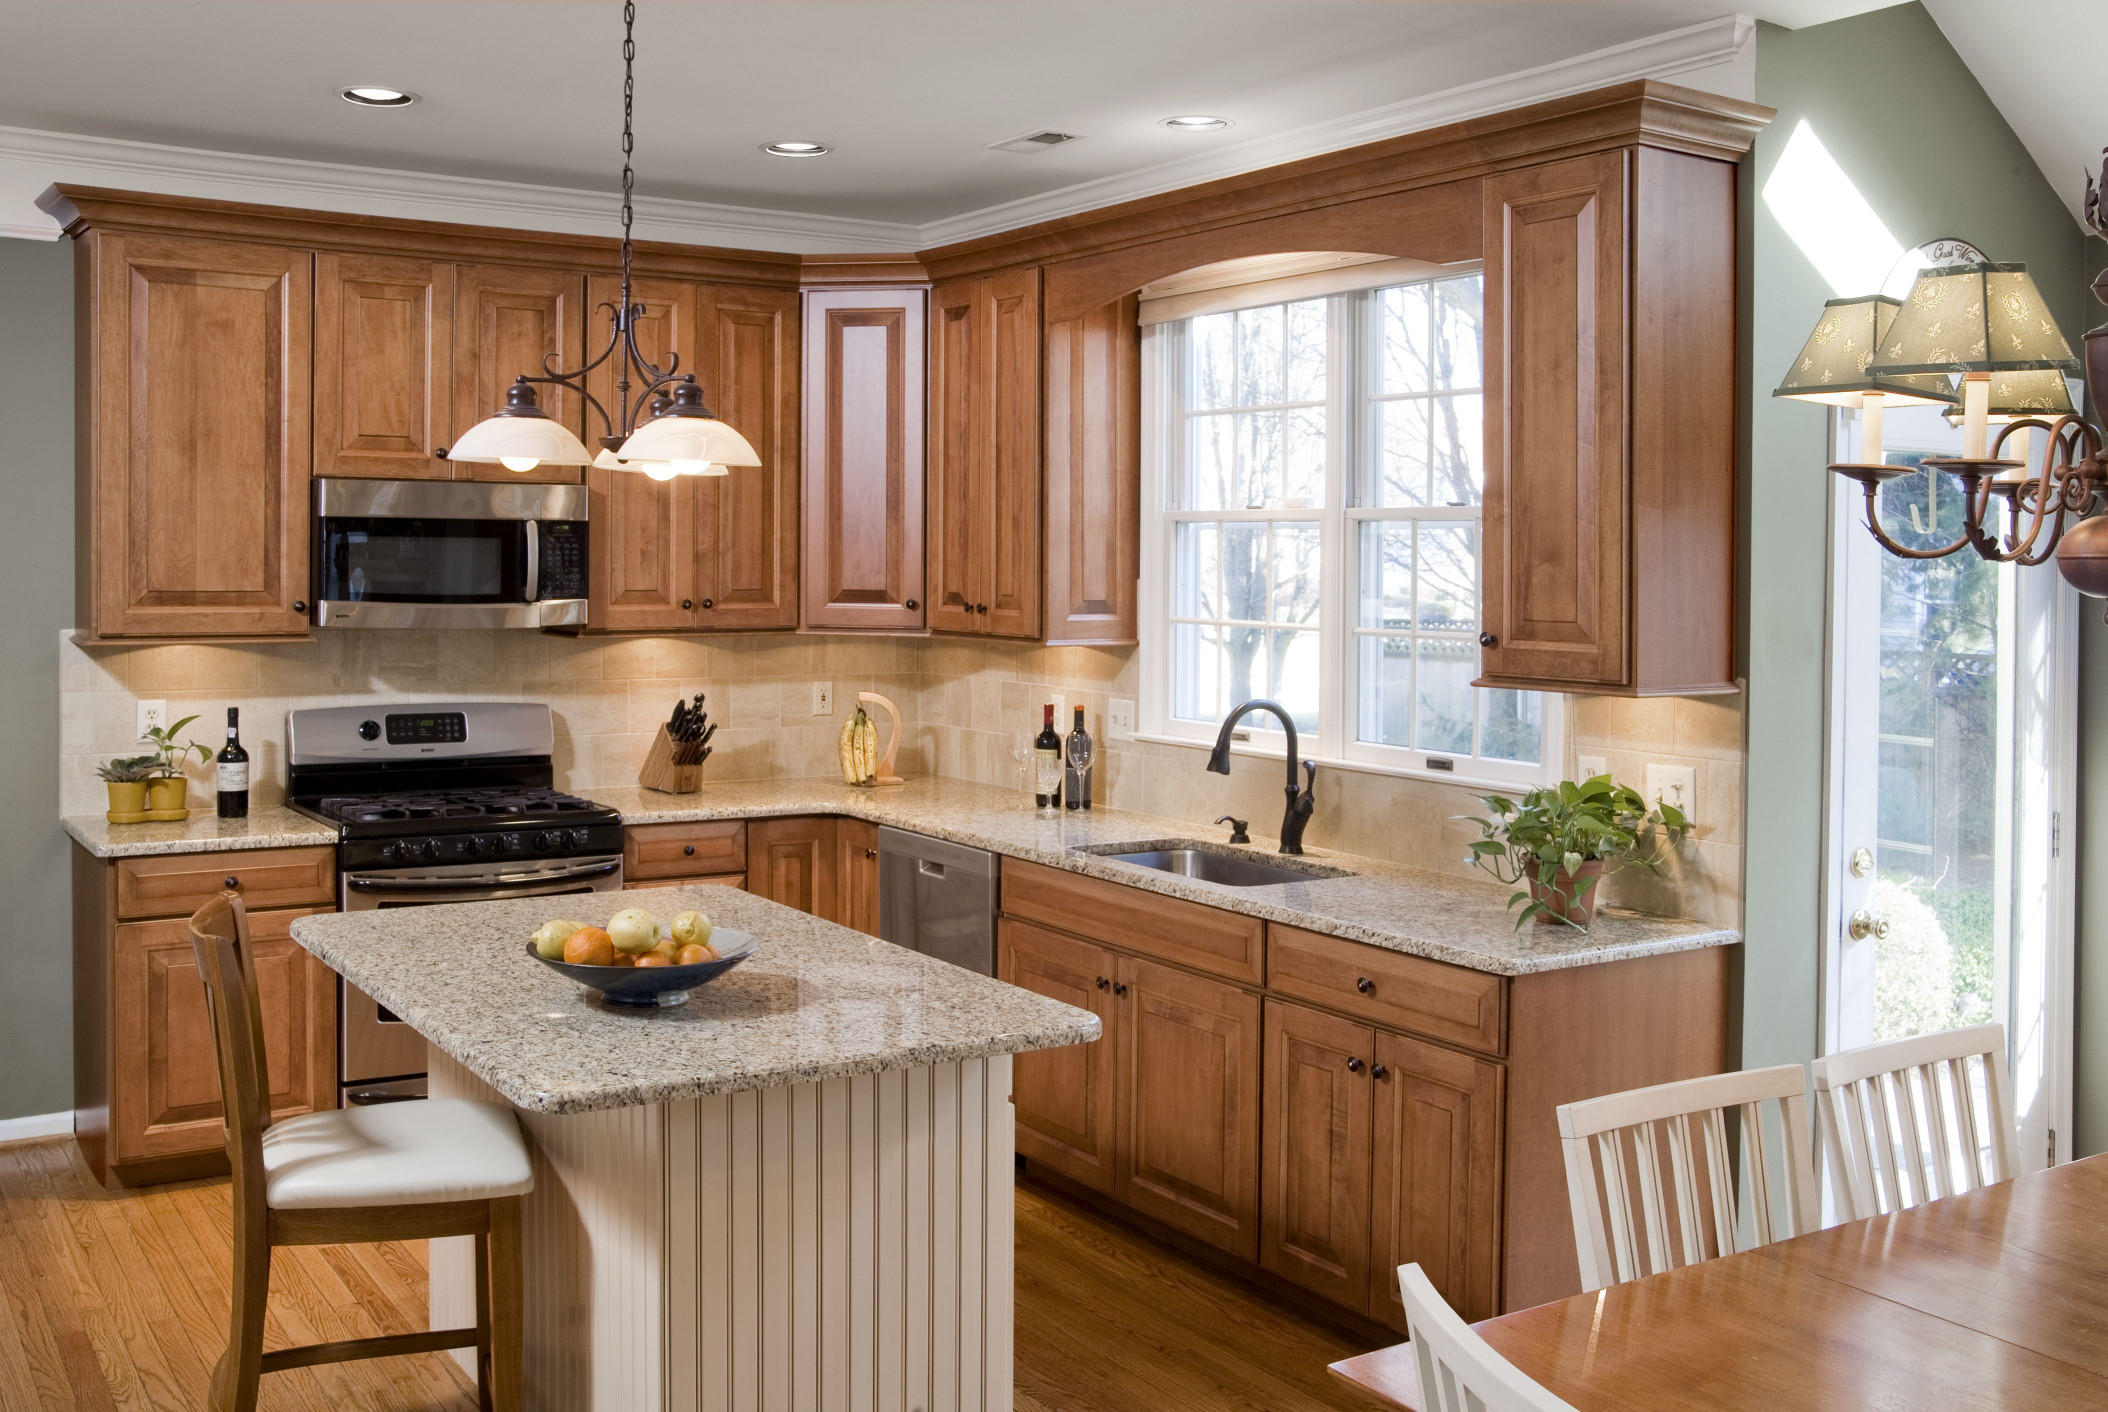 Small Kitchen Ideas On A Budget  Cabinet Refacing Cost and Factors to Consider Traba Homes